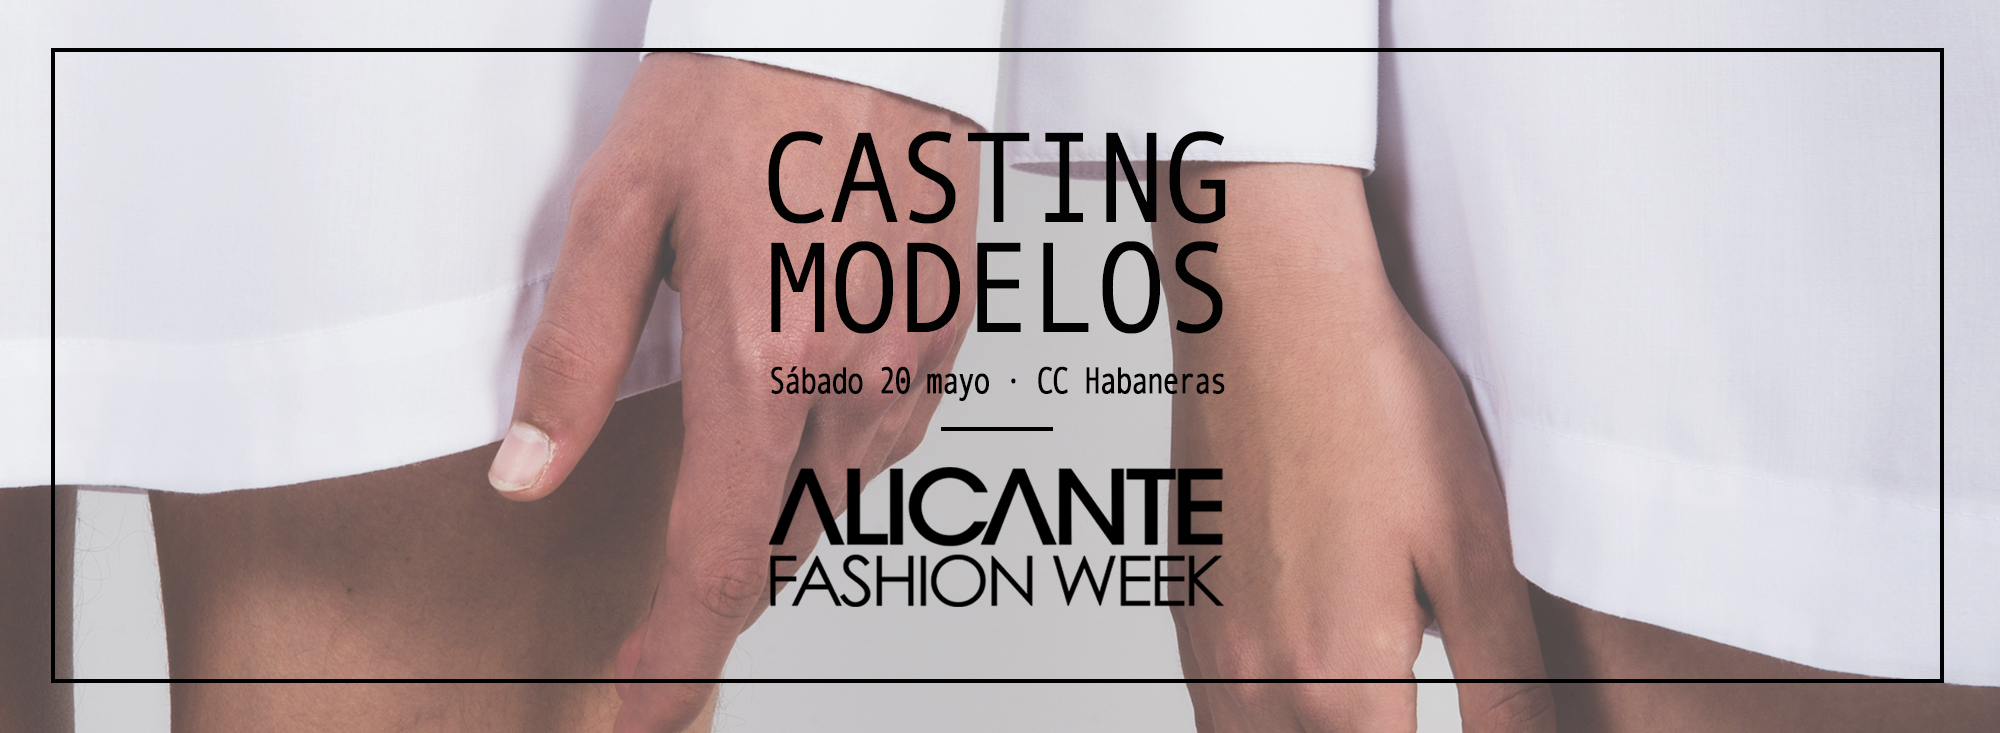 Casting Modelos Alicante Fashion Week 2017